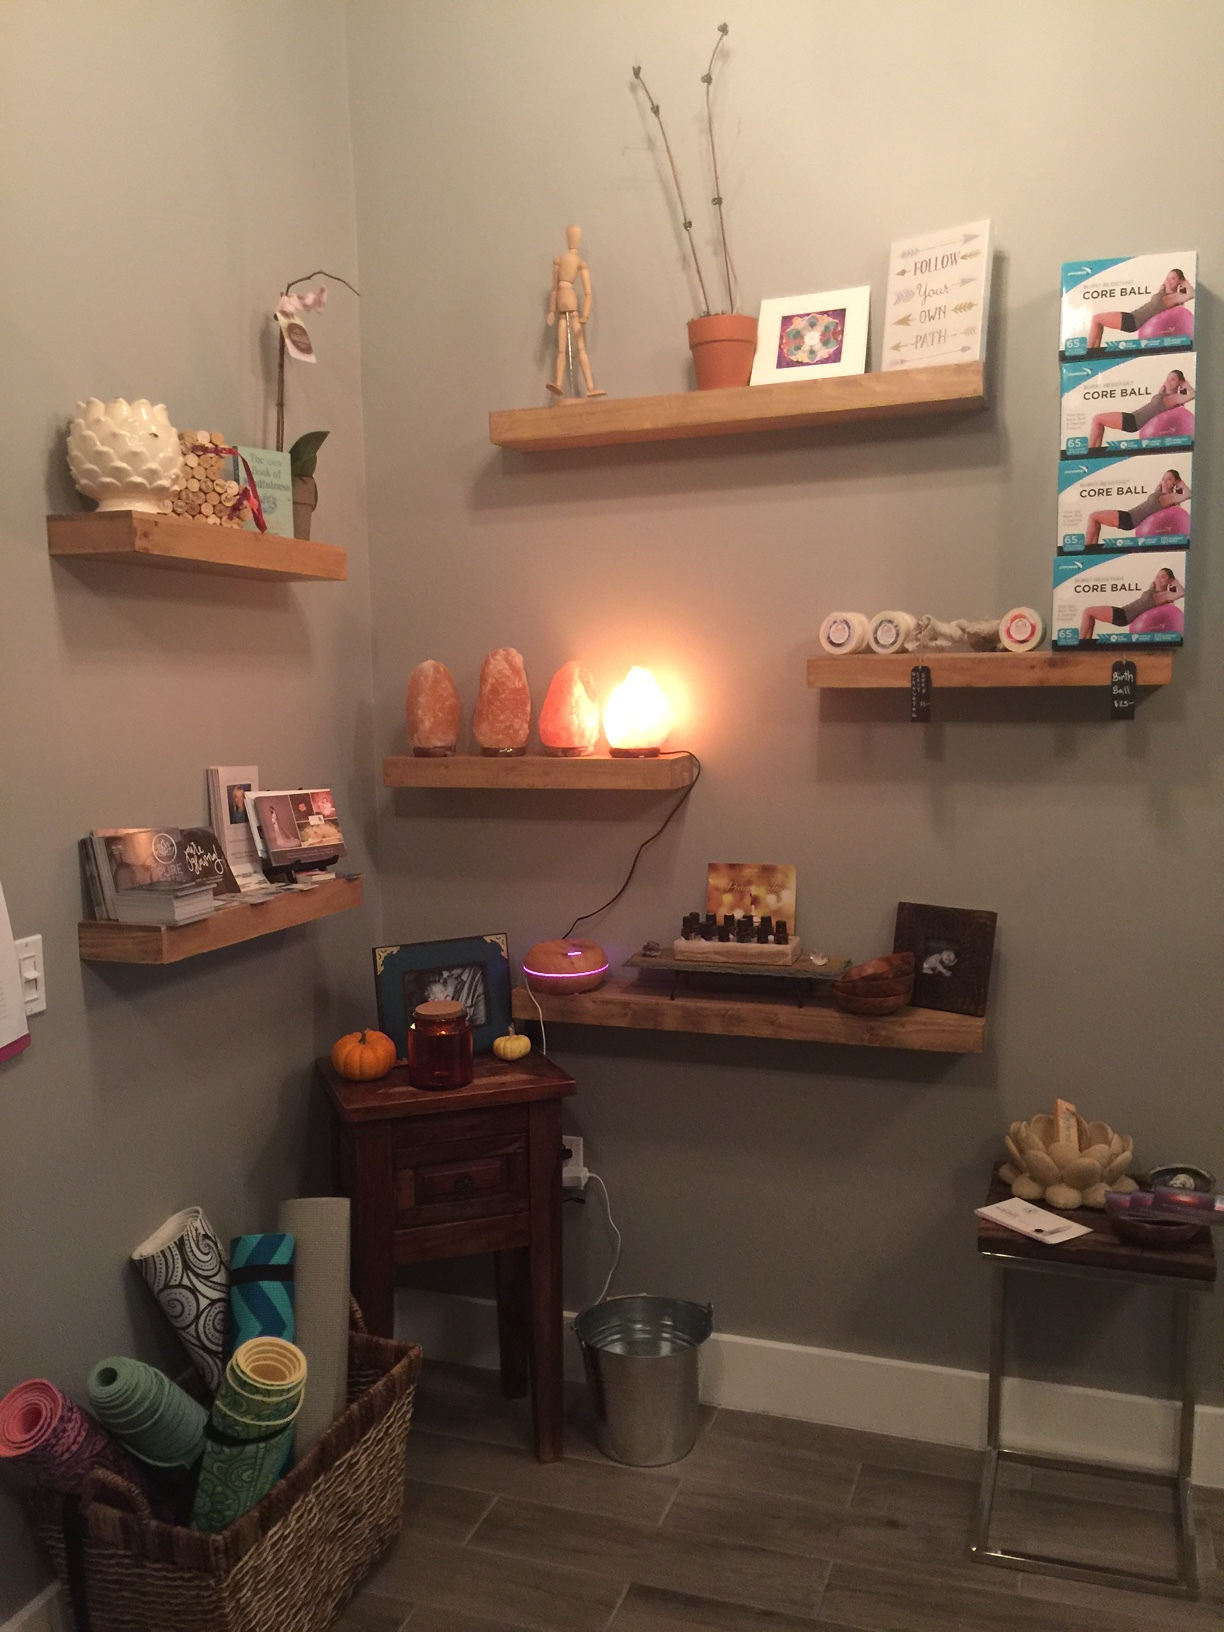 Pure Births offers retail area to our patients so they can purchase supplements, birth balls, and more! -